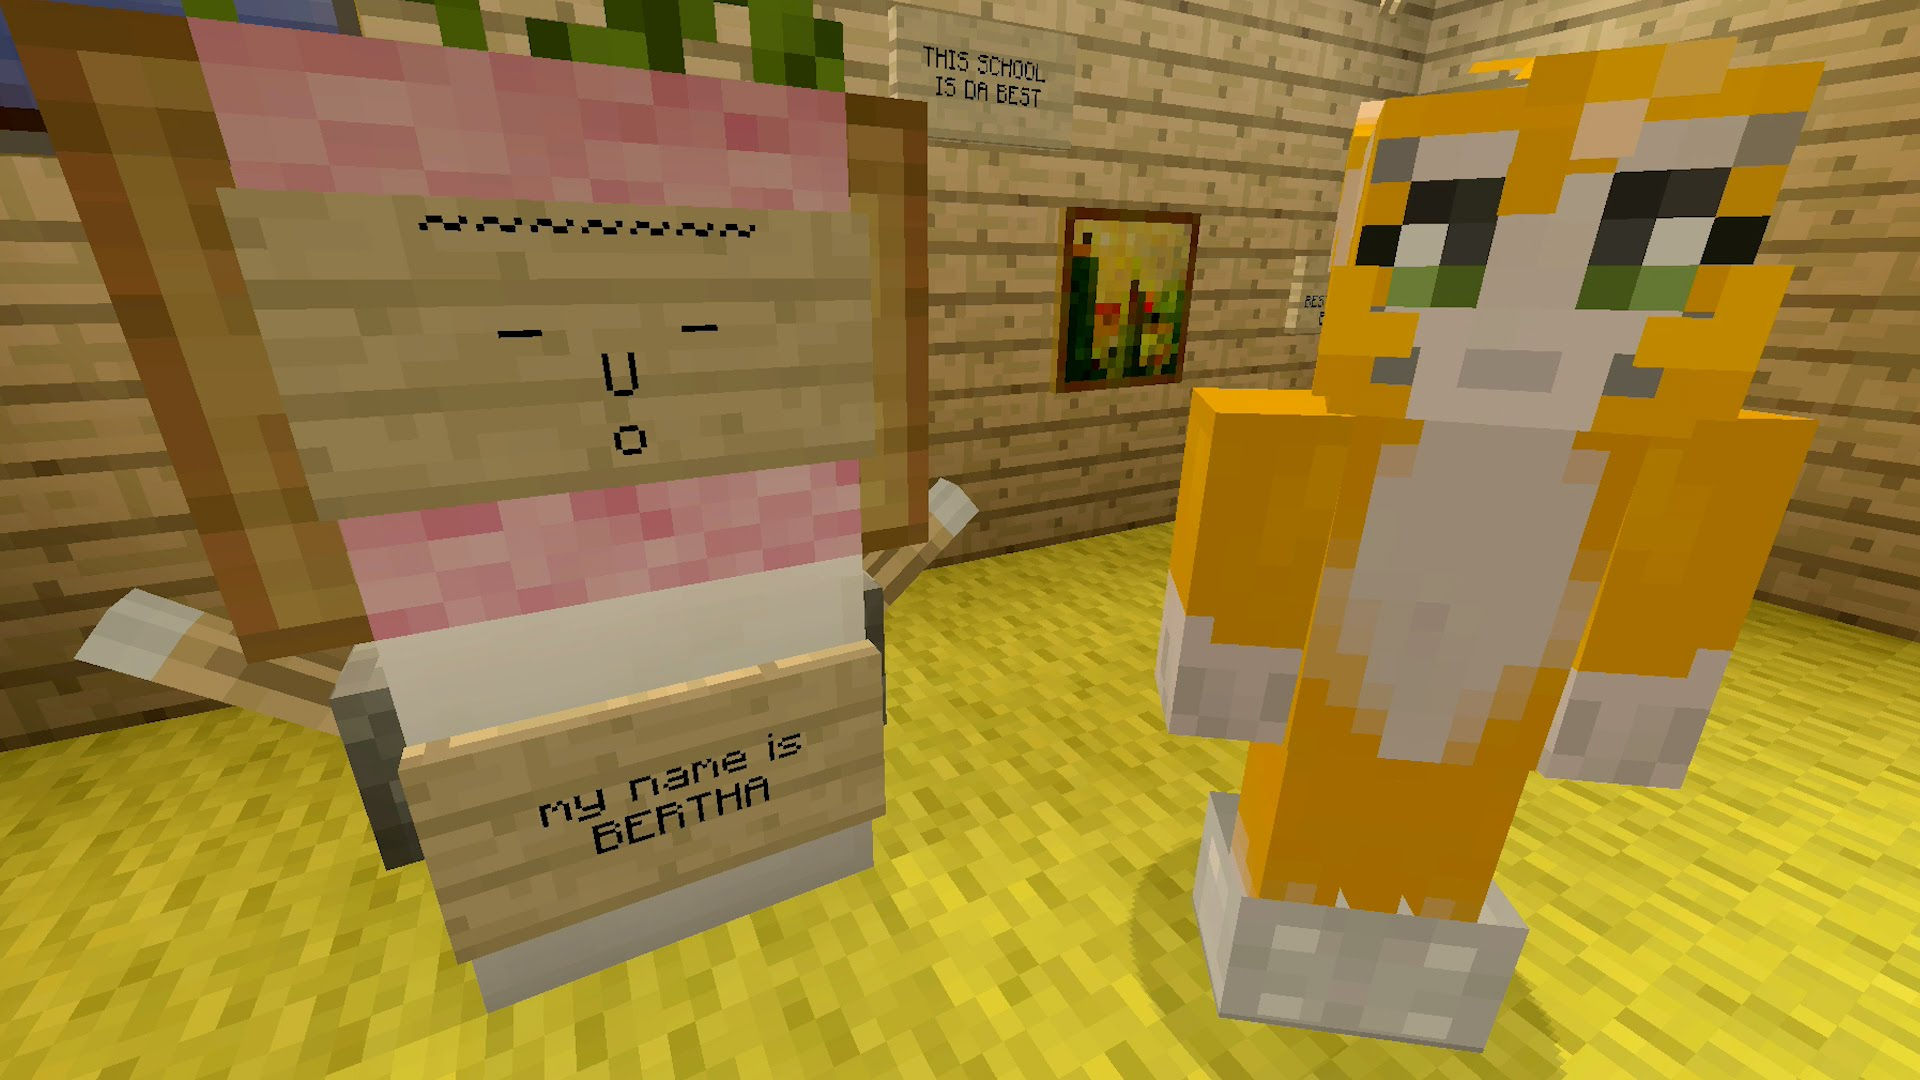 minecraft are stampy and sqaishey dating These are top keywords linked to the term stampy and squishy dating stampy and squishy kissing add to basket - view suggestions are stampy and squishy dating add to basket minecraft stampy and squishy dawings  minecraft sqaishey and stampy art add to basket drawings of stampy and sqaishey add to basket squishies add to basket.